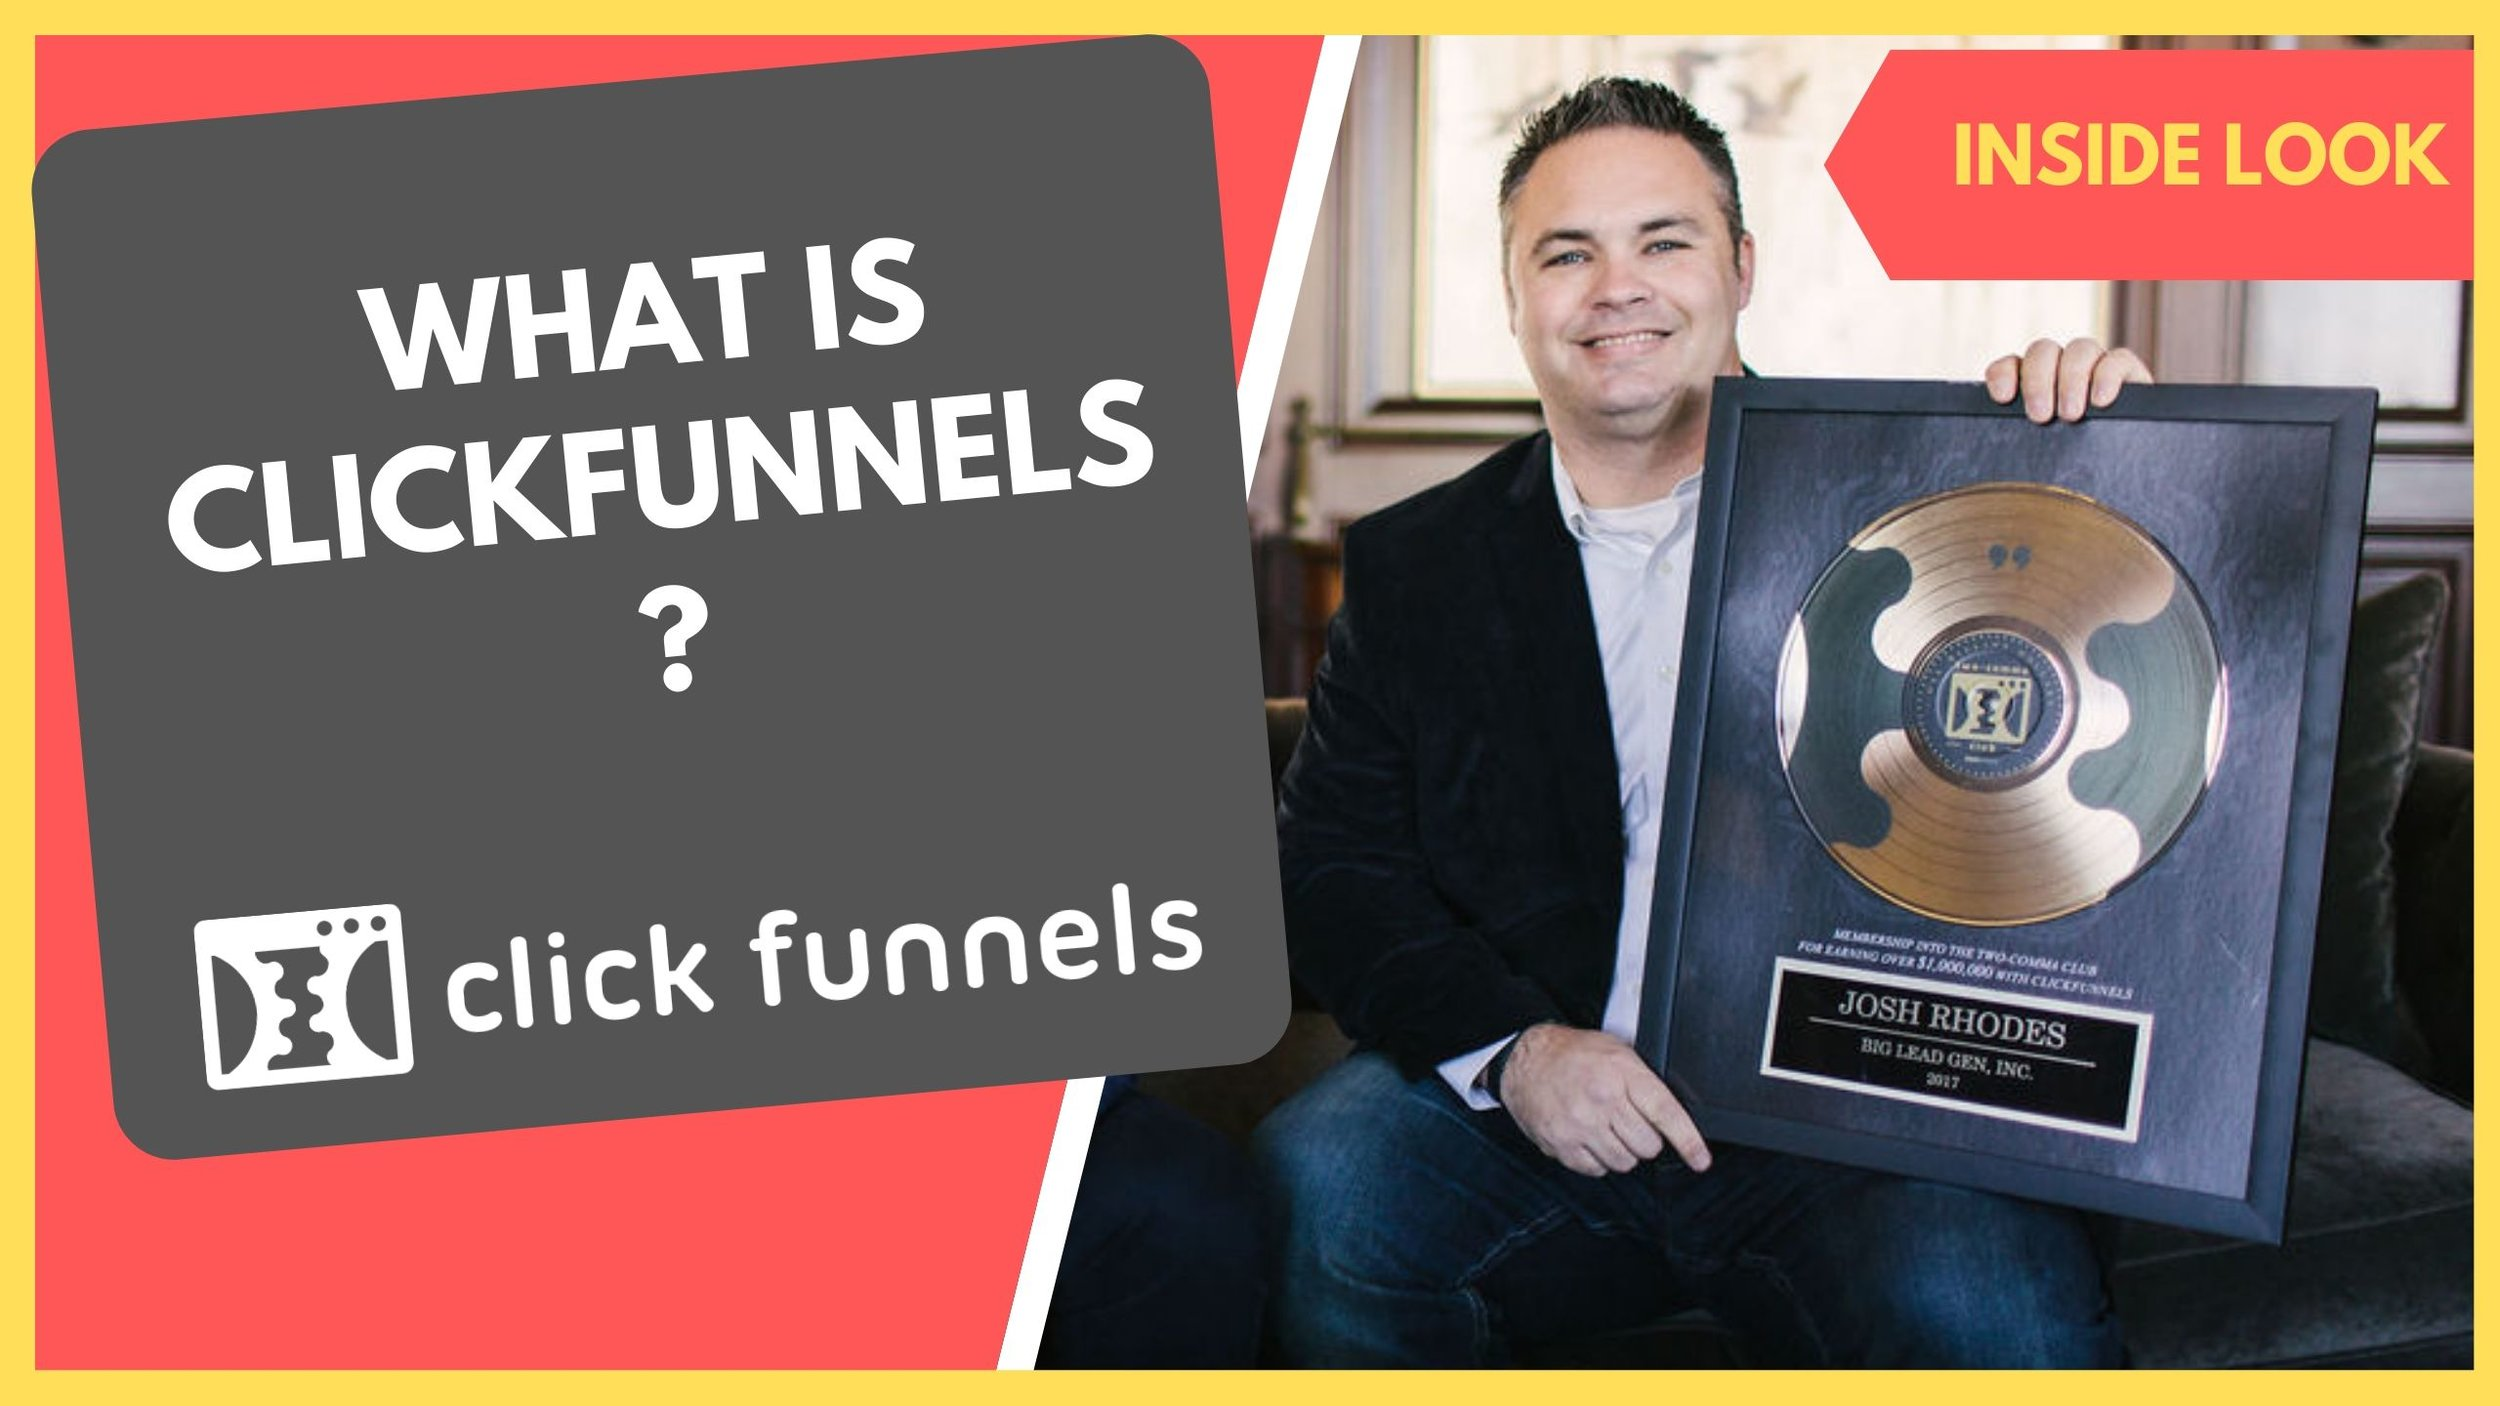 When Did Clickfunnels Start